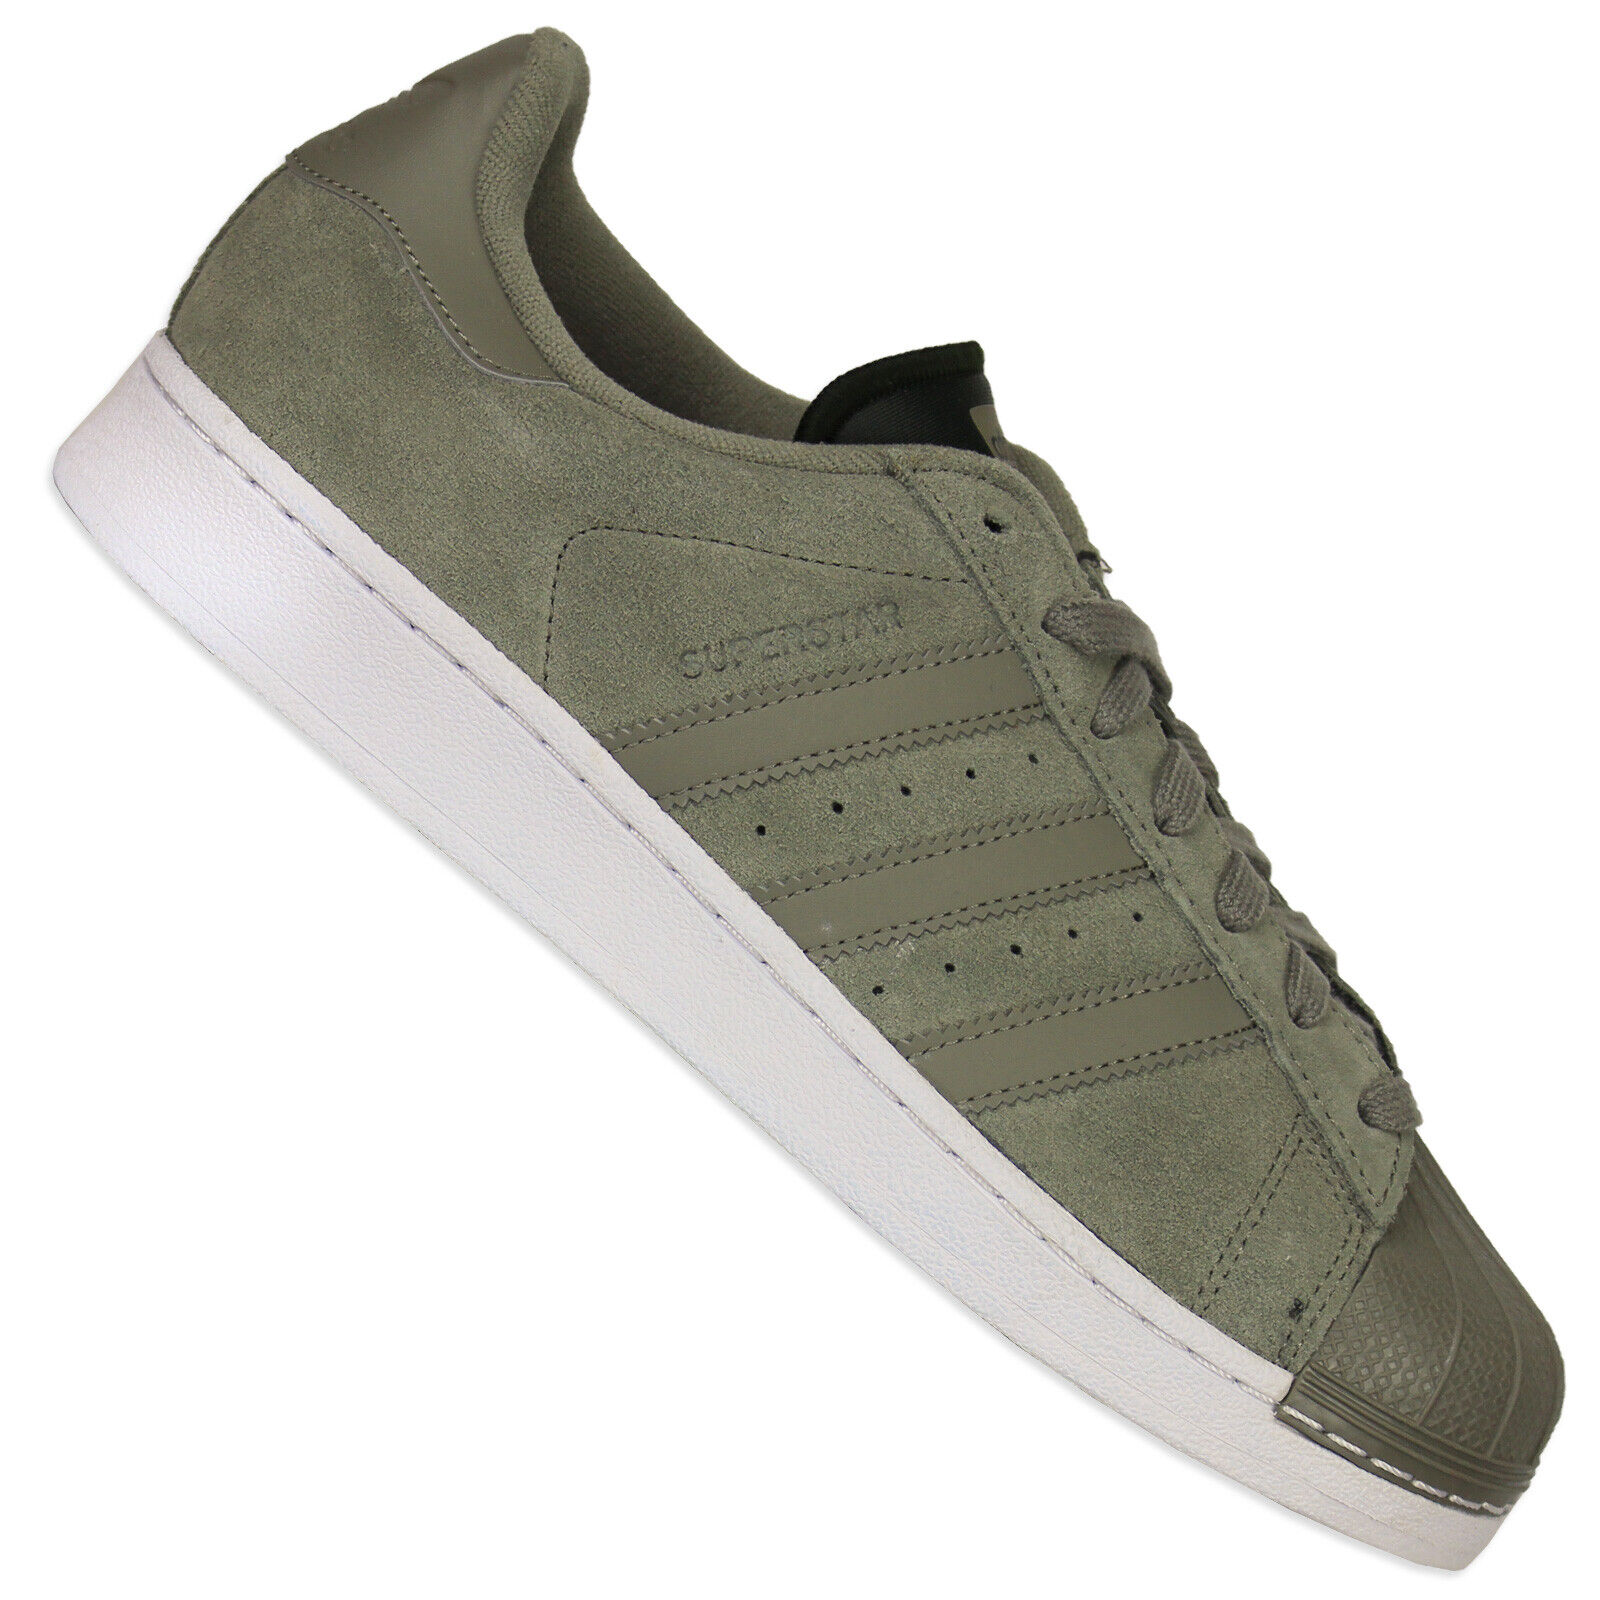 Adidas Originals Clean Superstar Trainers shoes Suede Cg3779 Trace Cargo